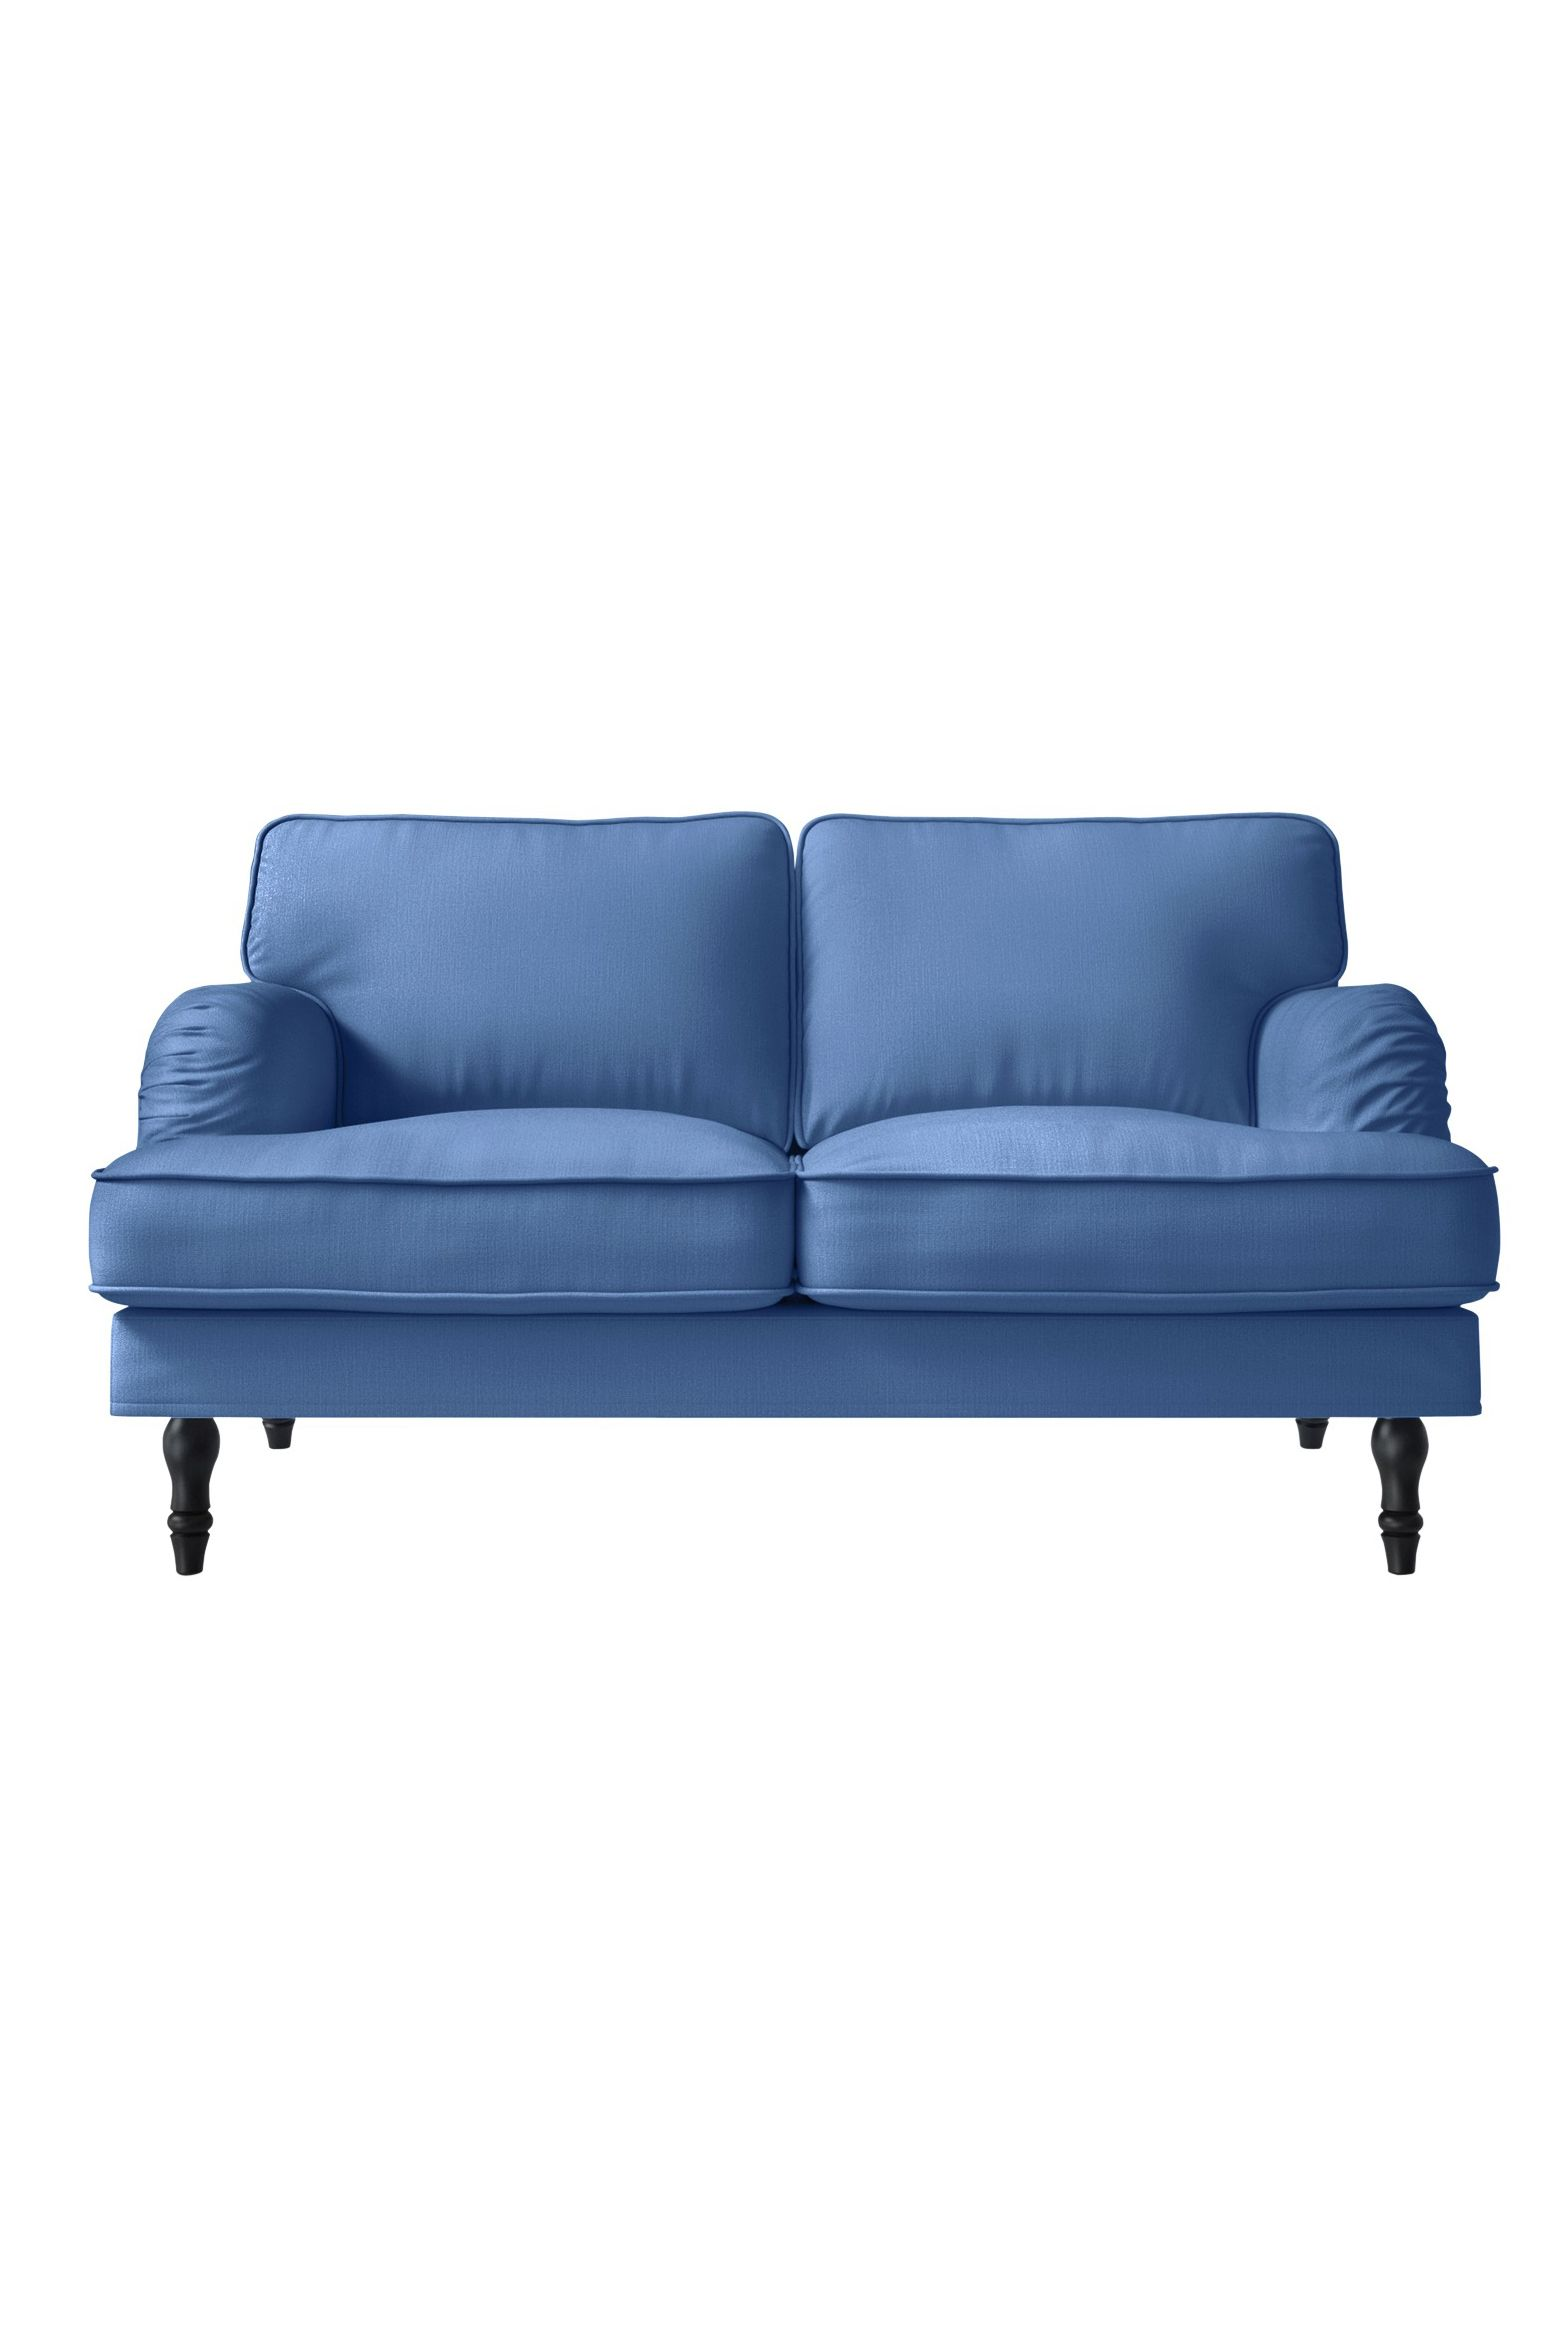 sectional sofa under 2000 european style sleeper best  review home decor